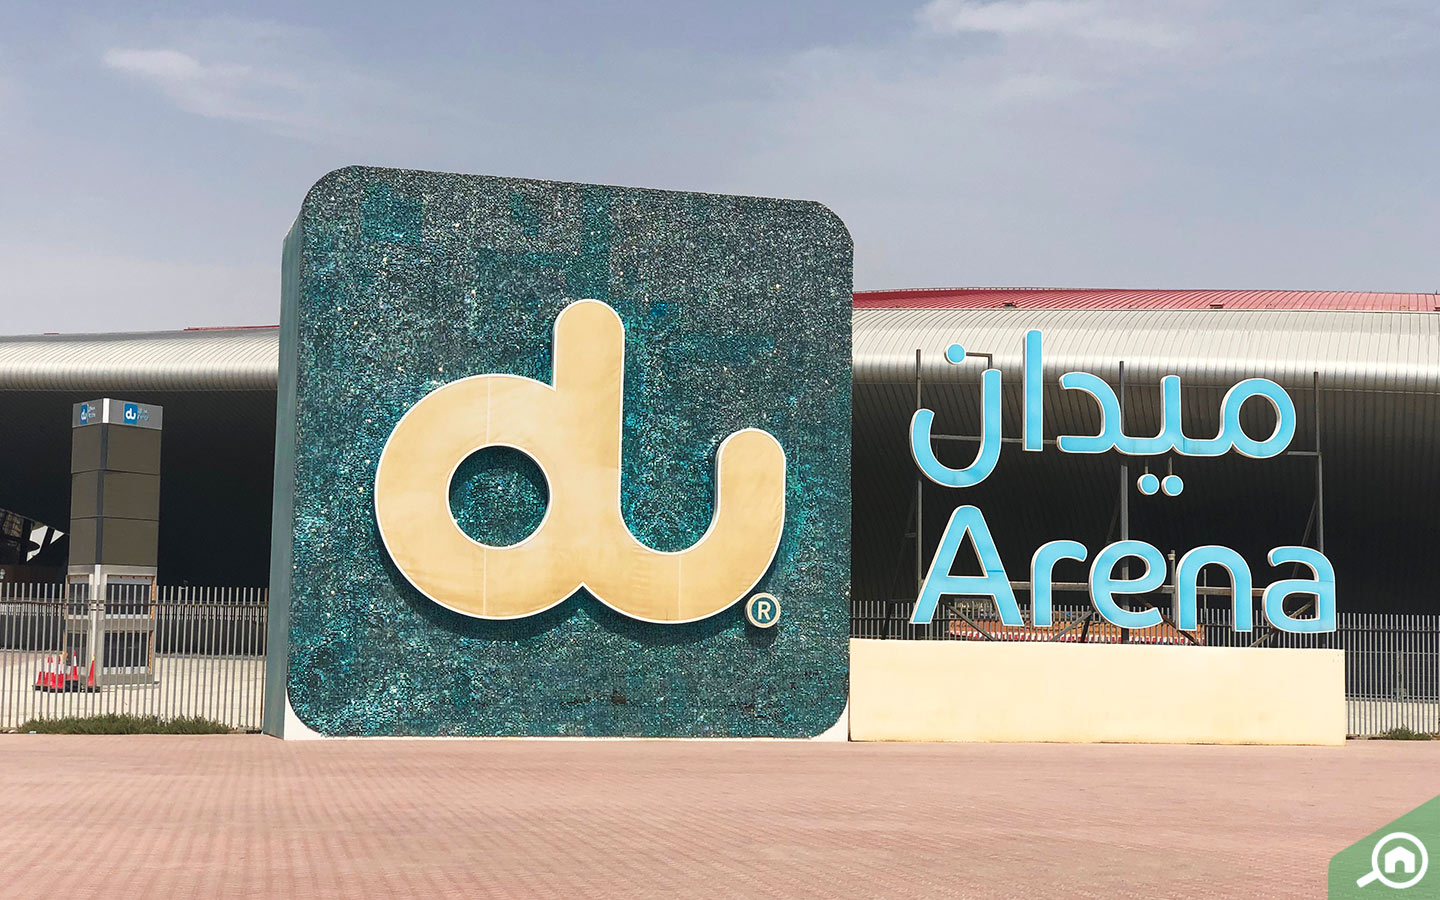 The dU arena on Yas Island